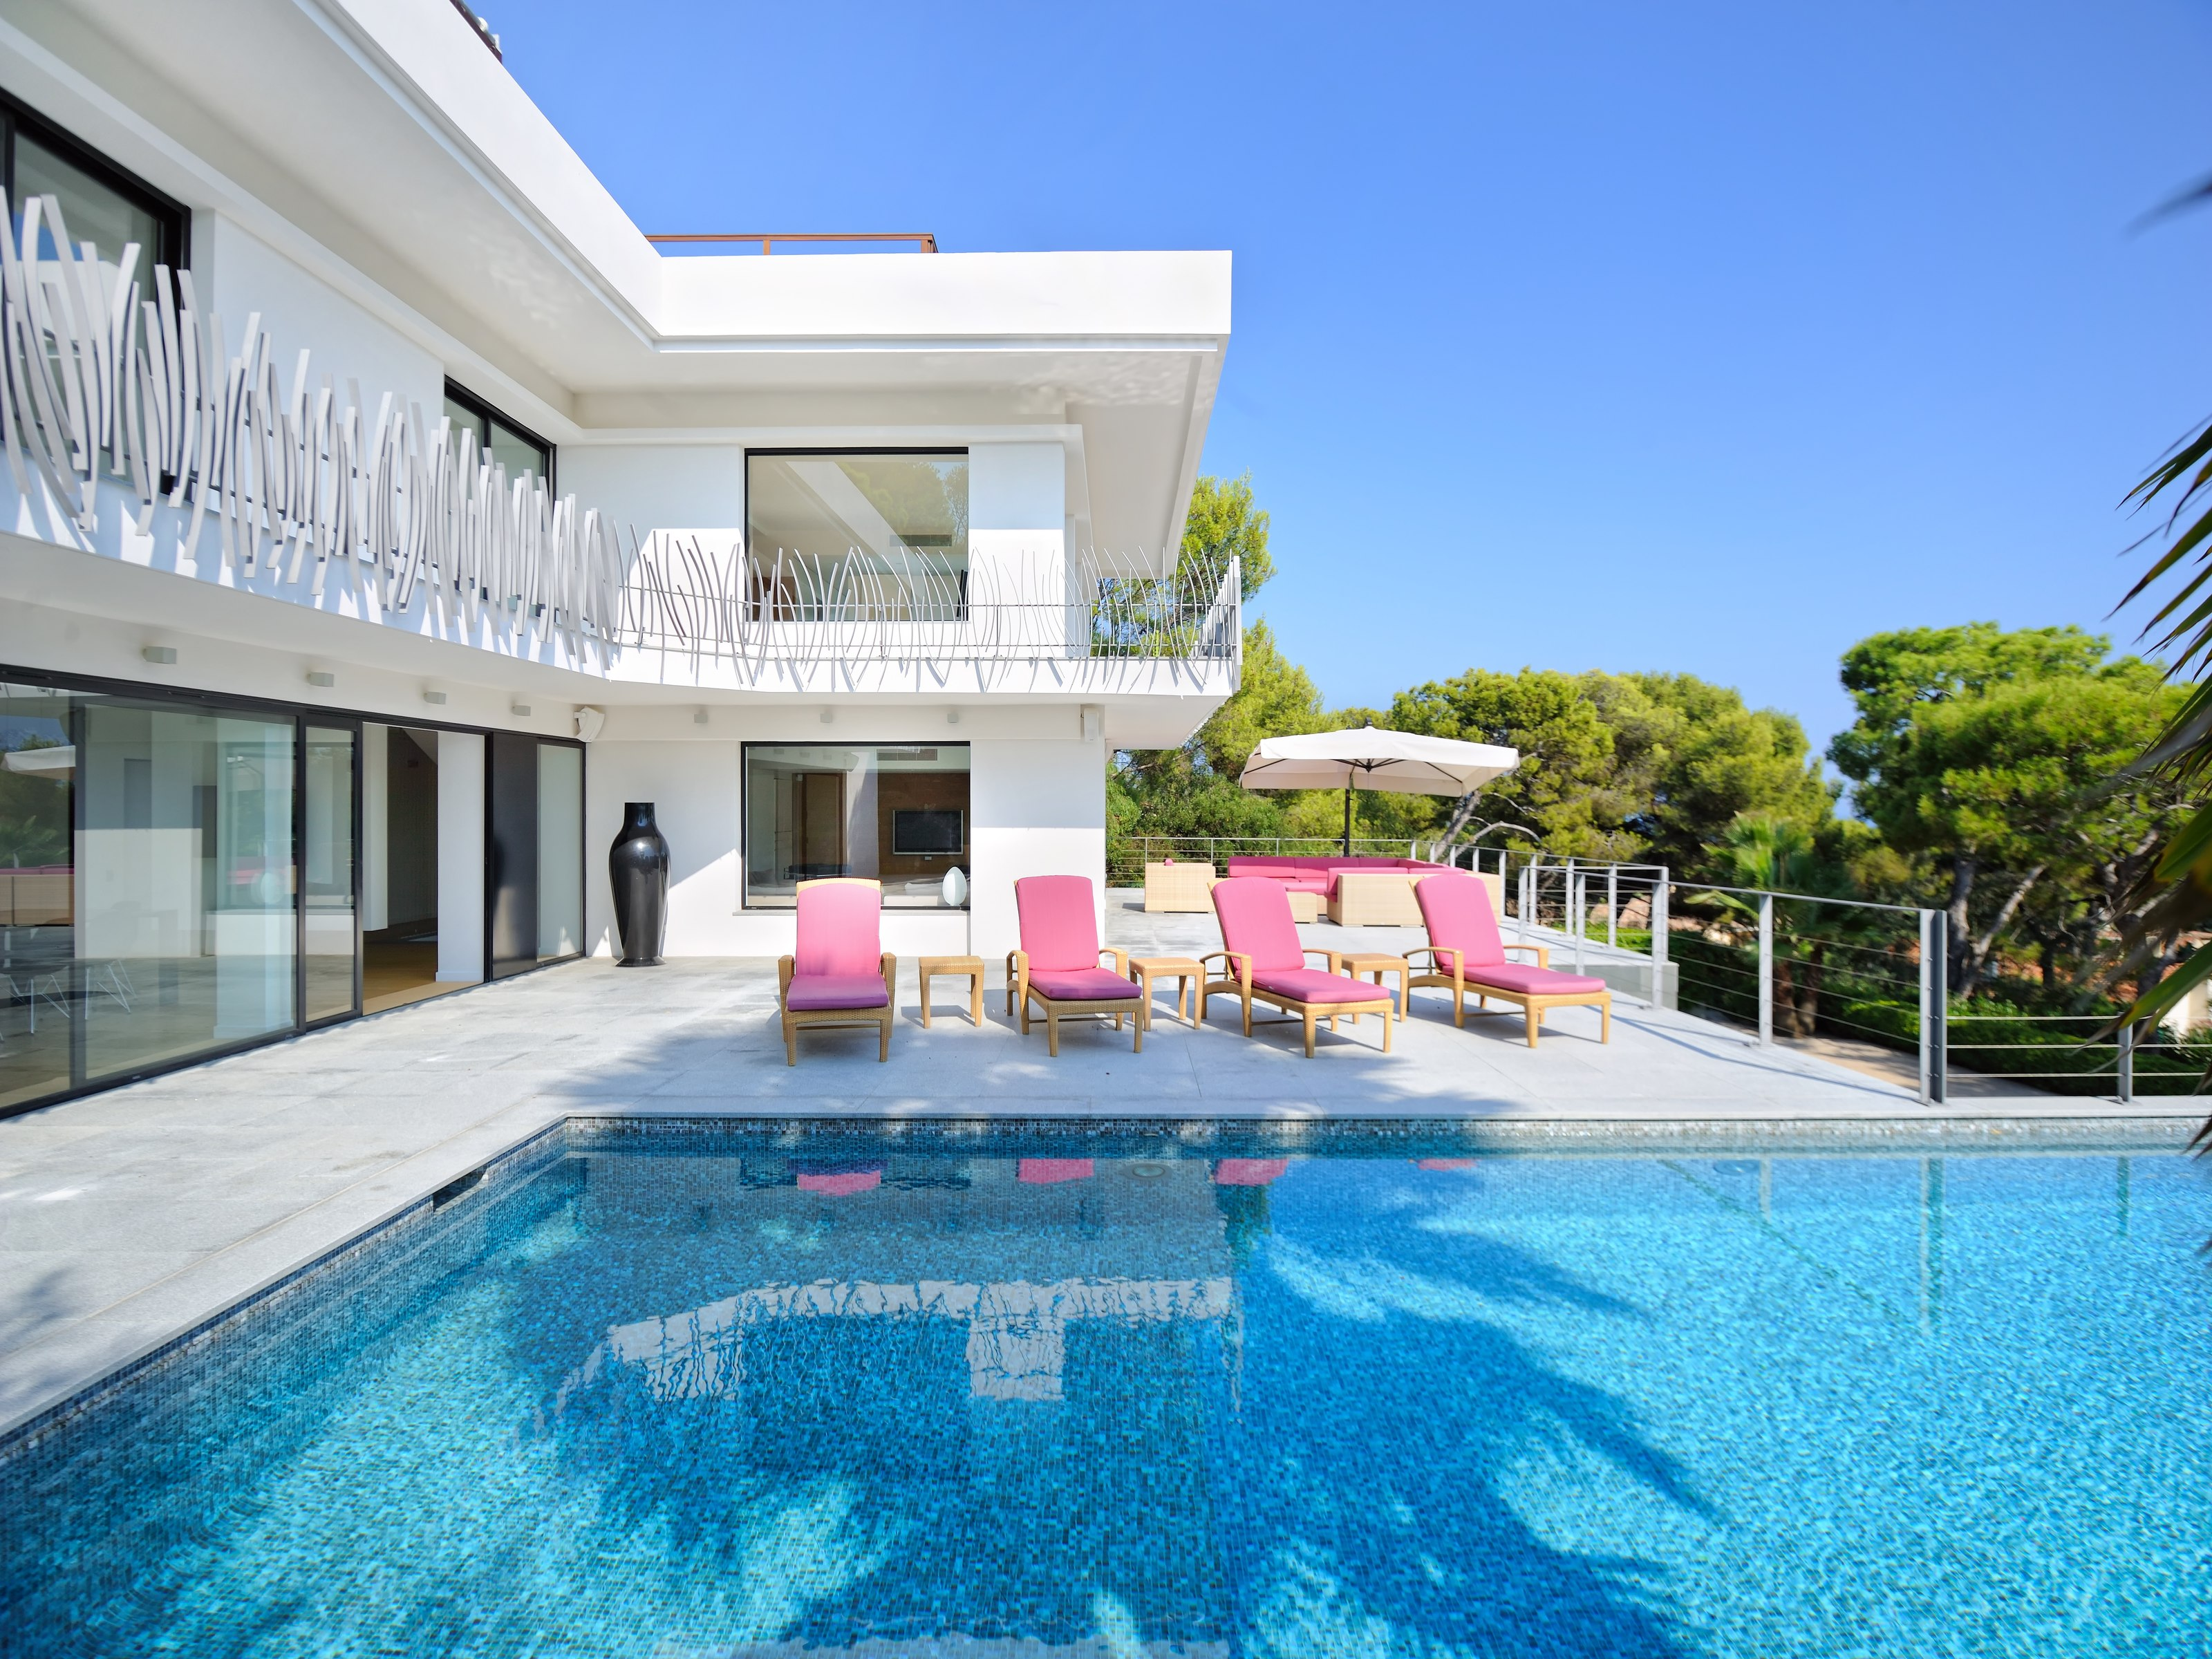 Single Family Home for Sale at Sole Agent - Superb Contemporary Villa with panora Saint Jean Cap Ferrat, Provence-Alpes-Cote D'Azur 06230 France